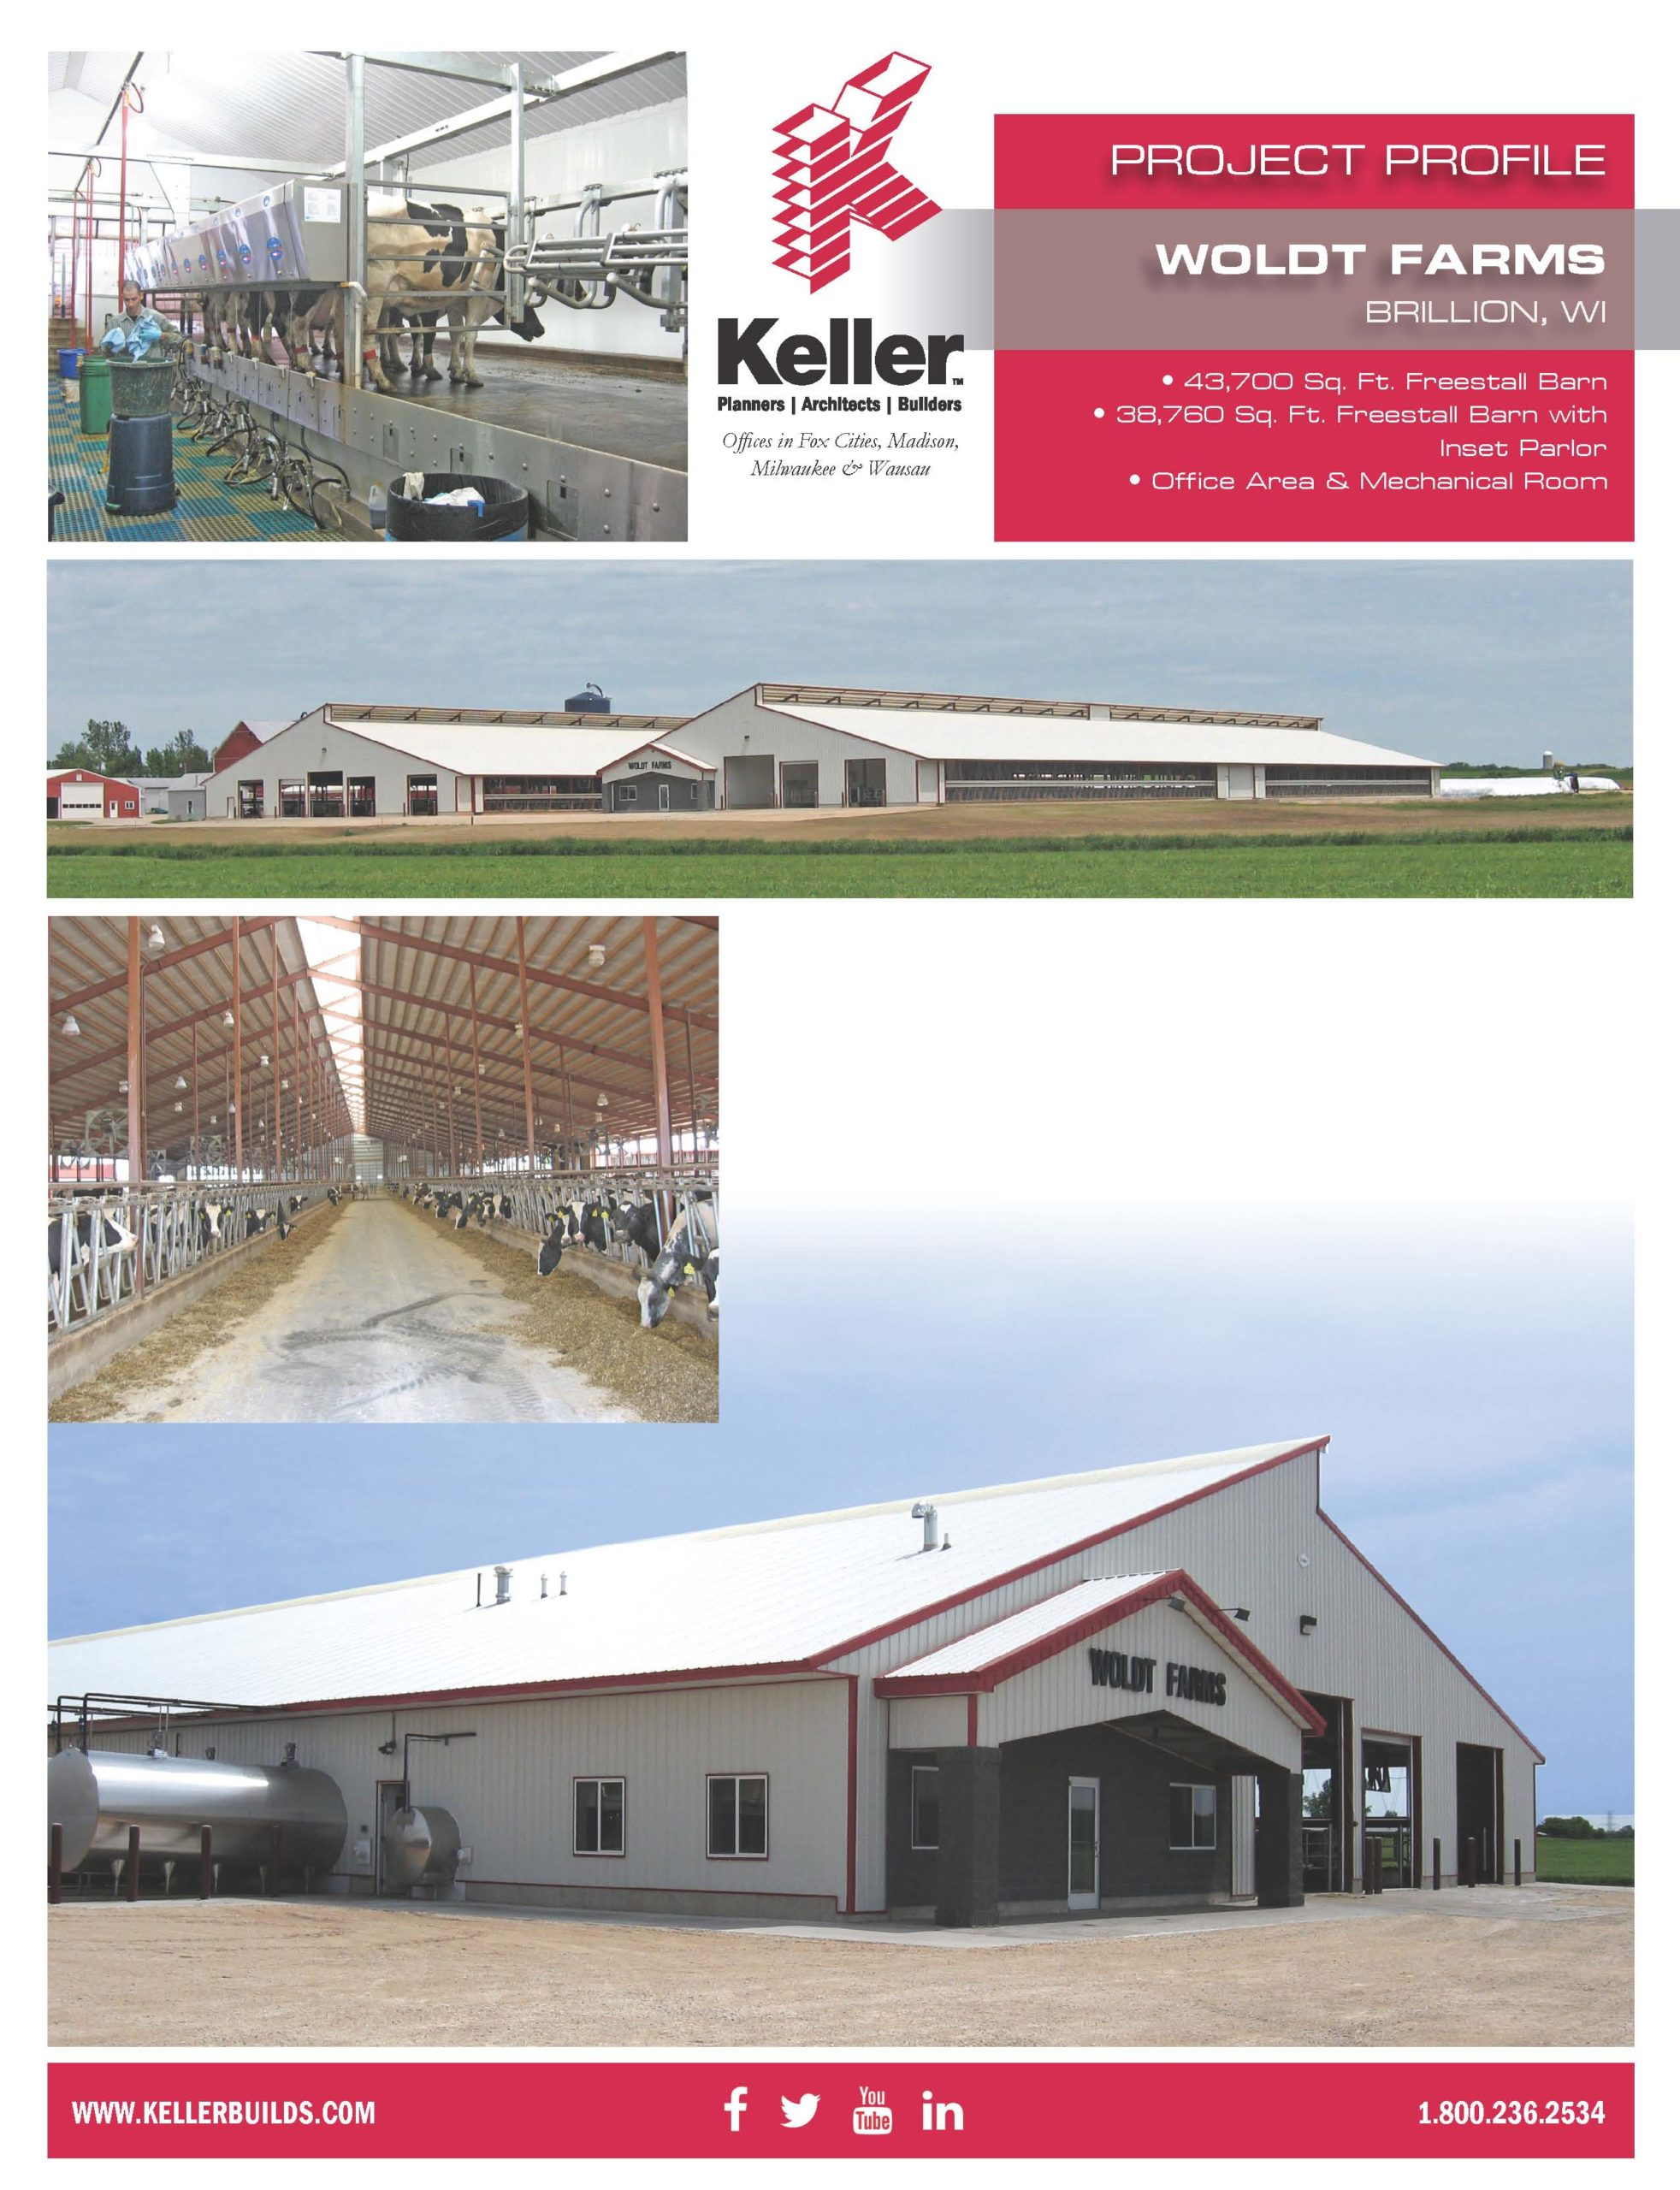 WOLDT FARMS